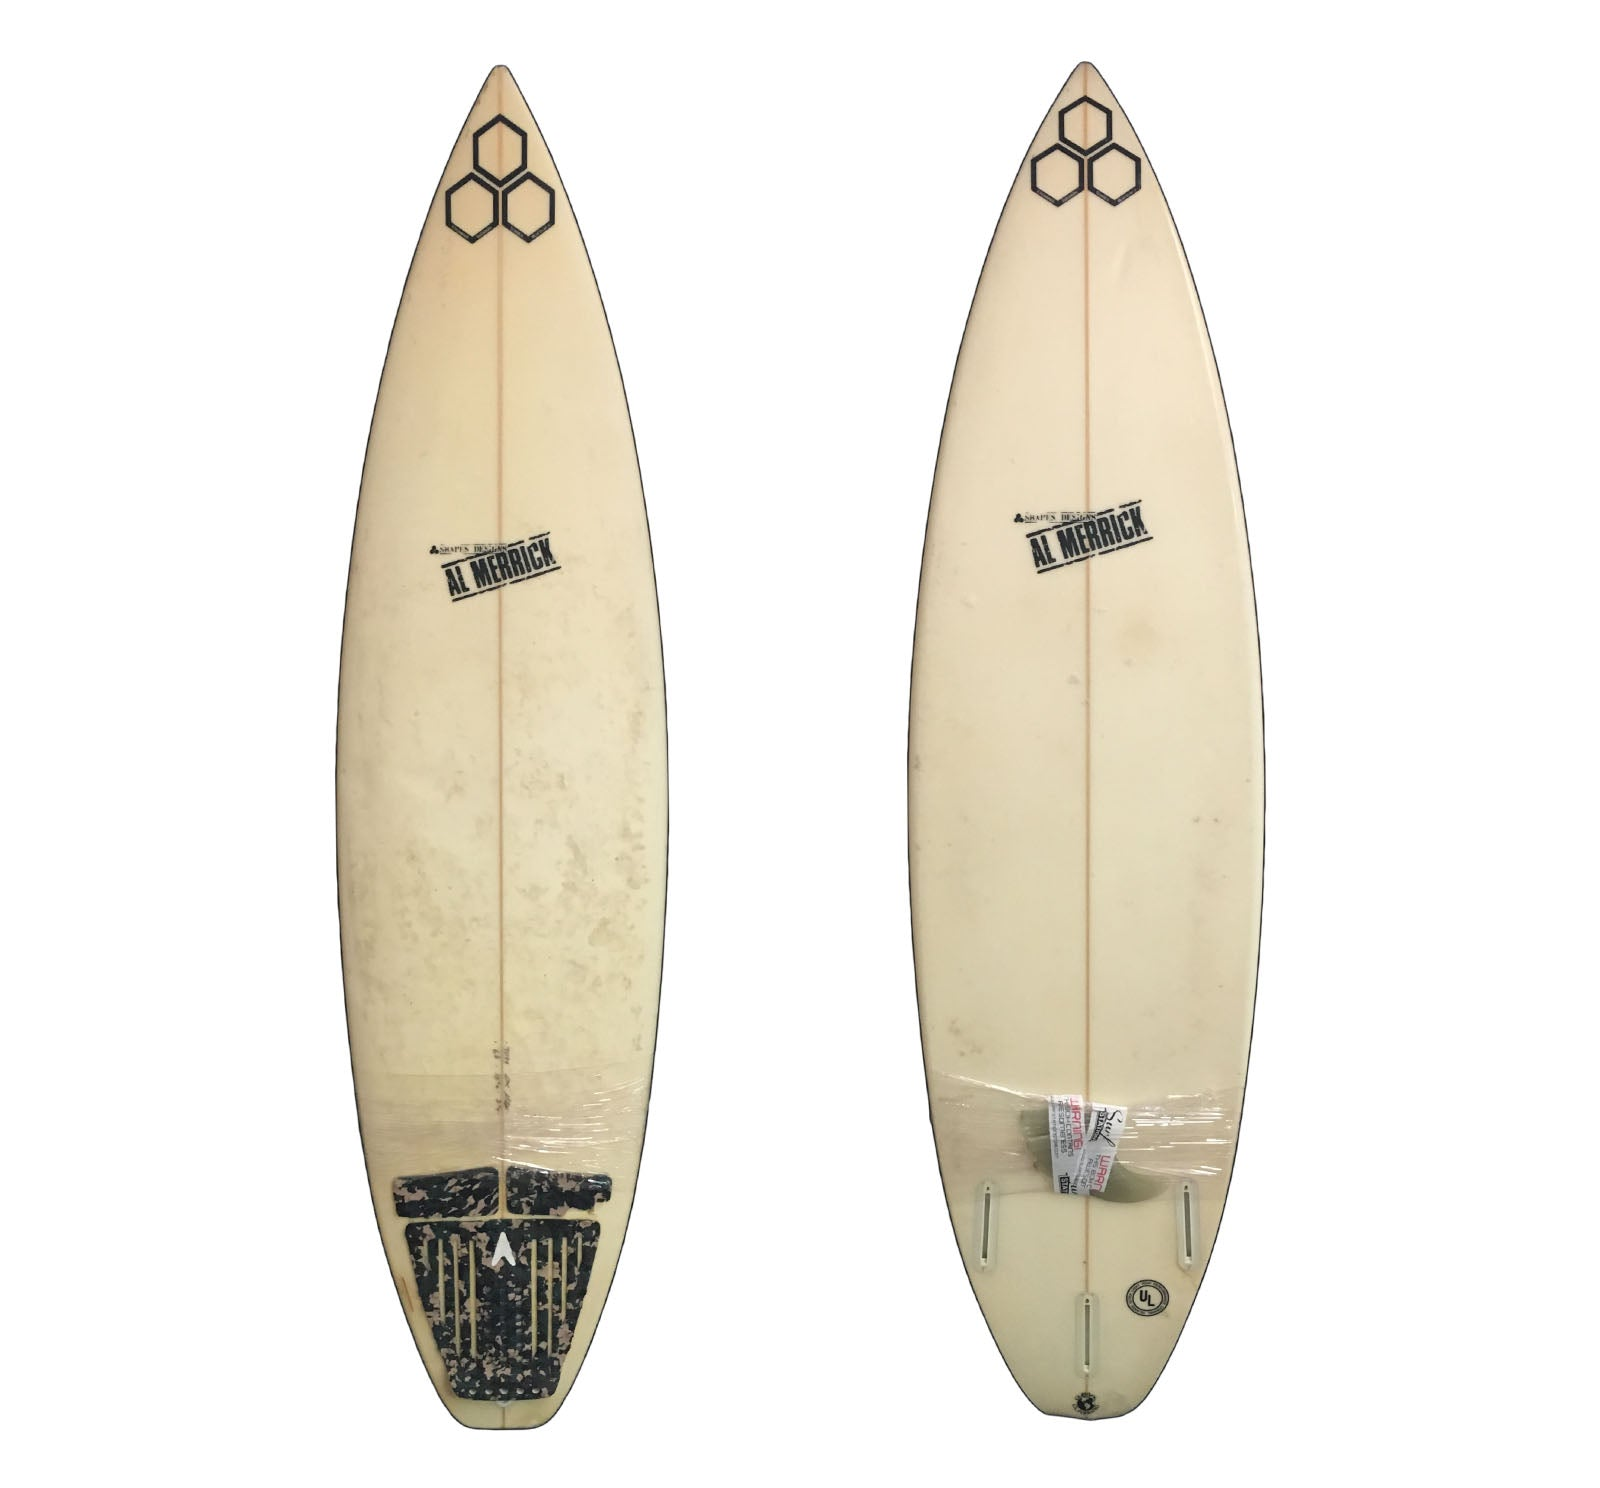 Channel Islands MBM 6'2 Used Surfboard